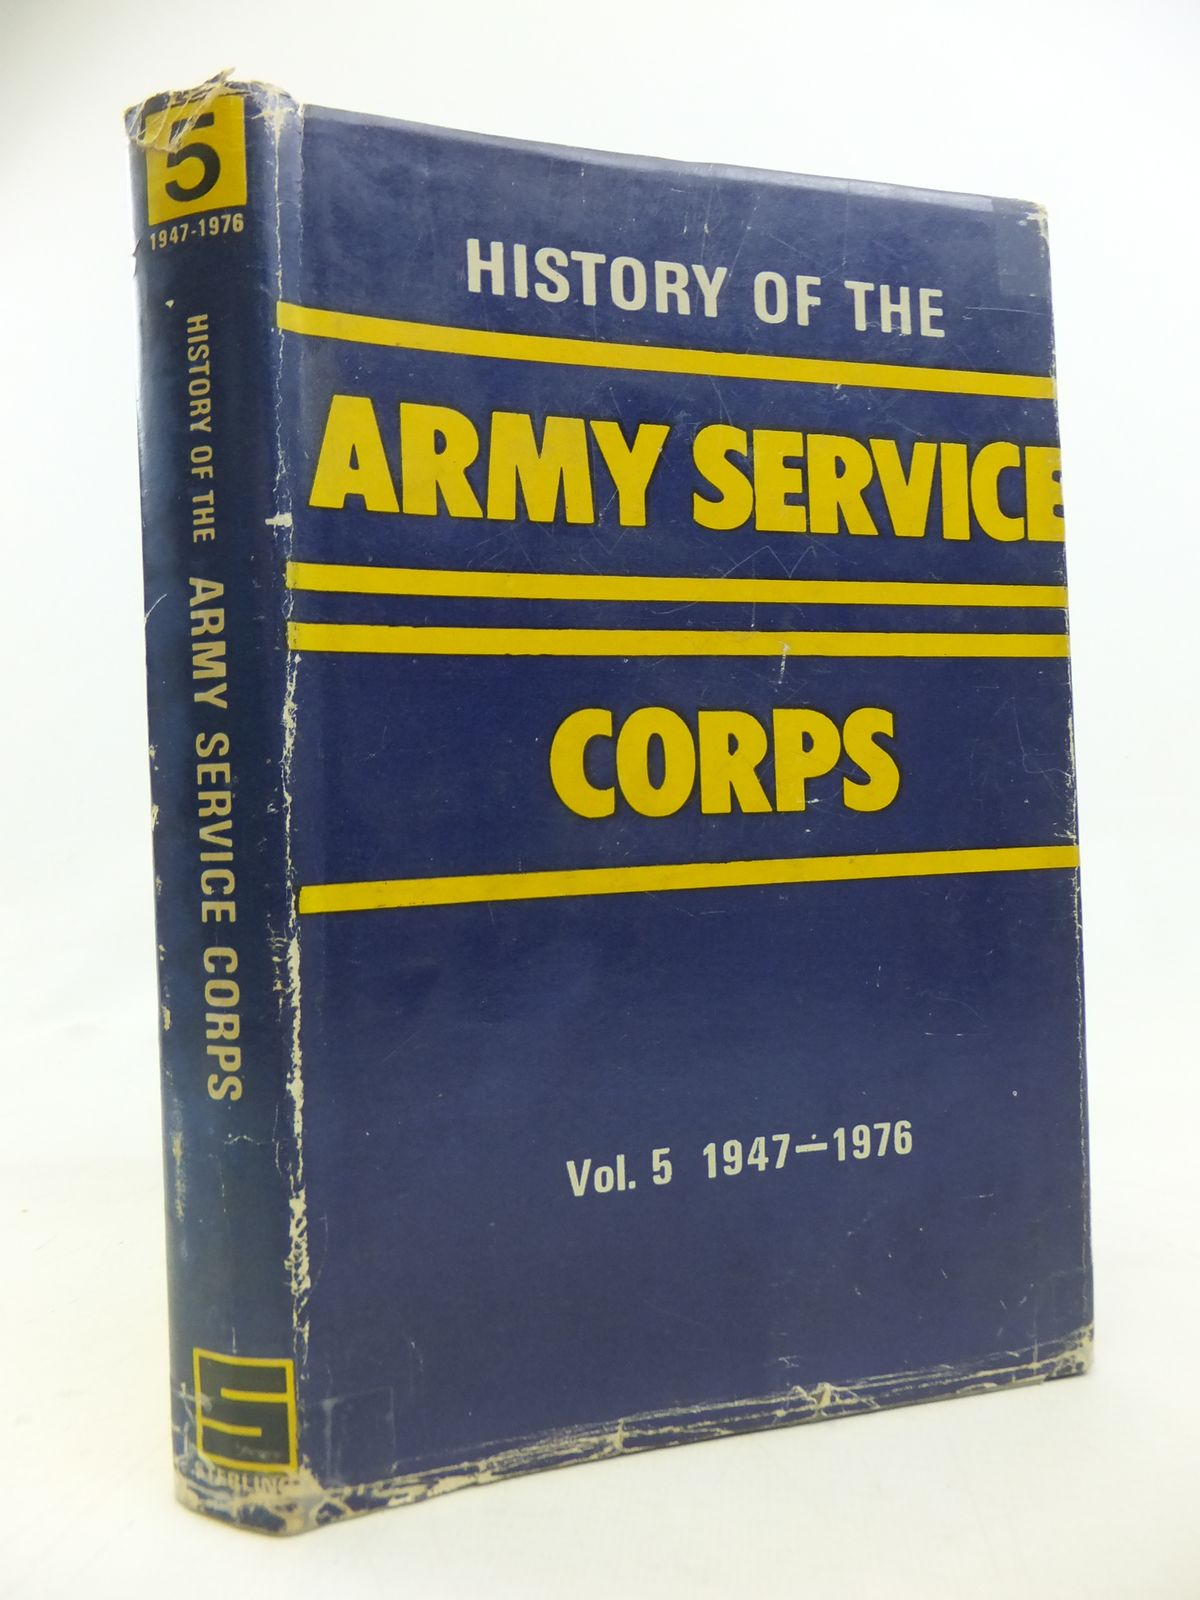 Photo of HISTORY OF THE ARMY SERVICE CORPS (1947 - 1976) published by Sterling Publishers Pvt Ltd (STOCK CODE: 2115616)  for sale by Stella & Rose's Books